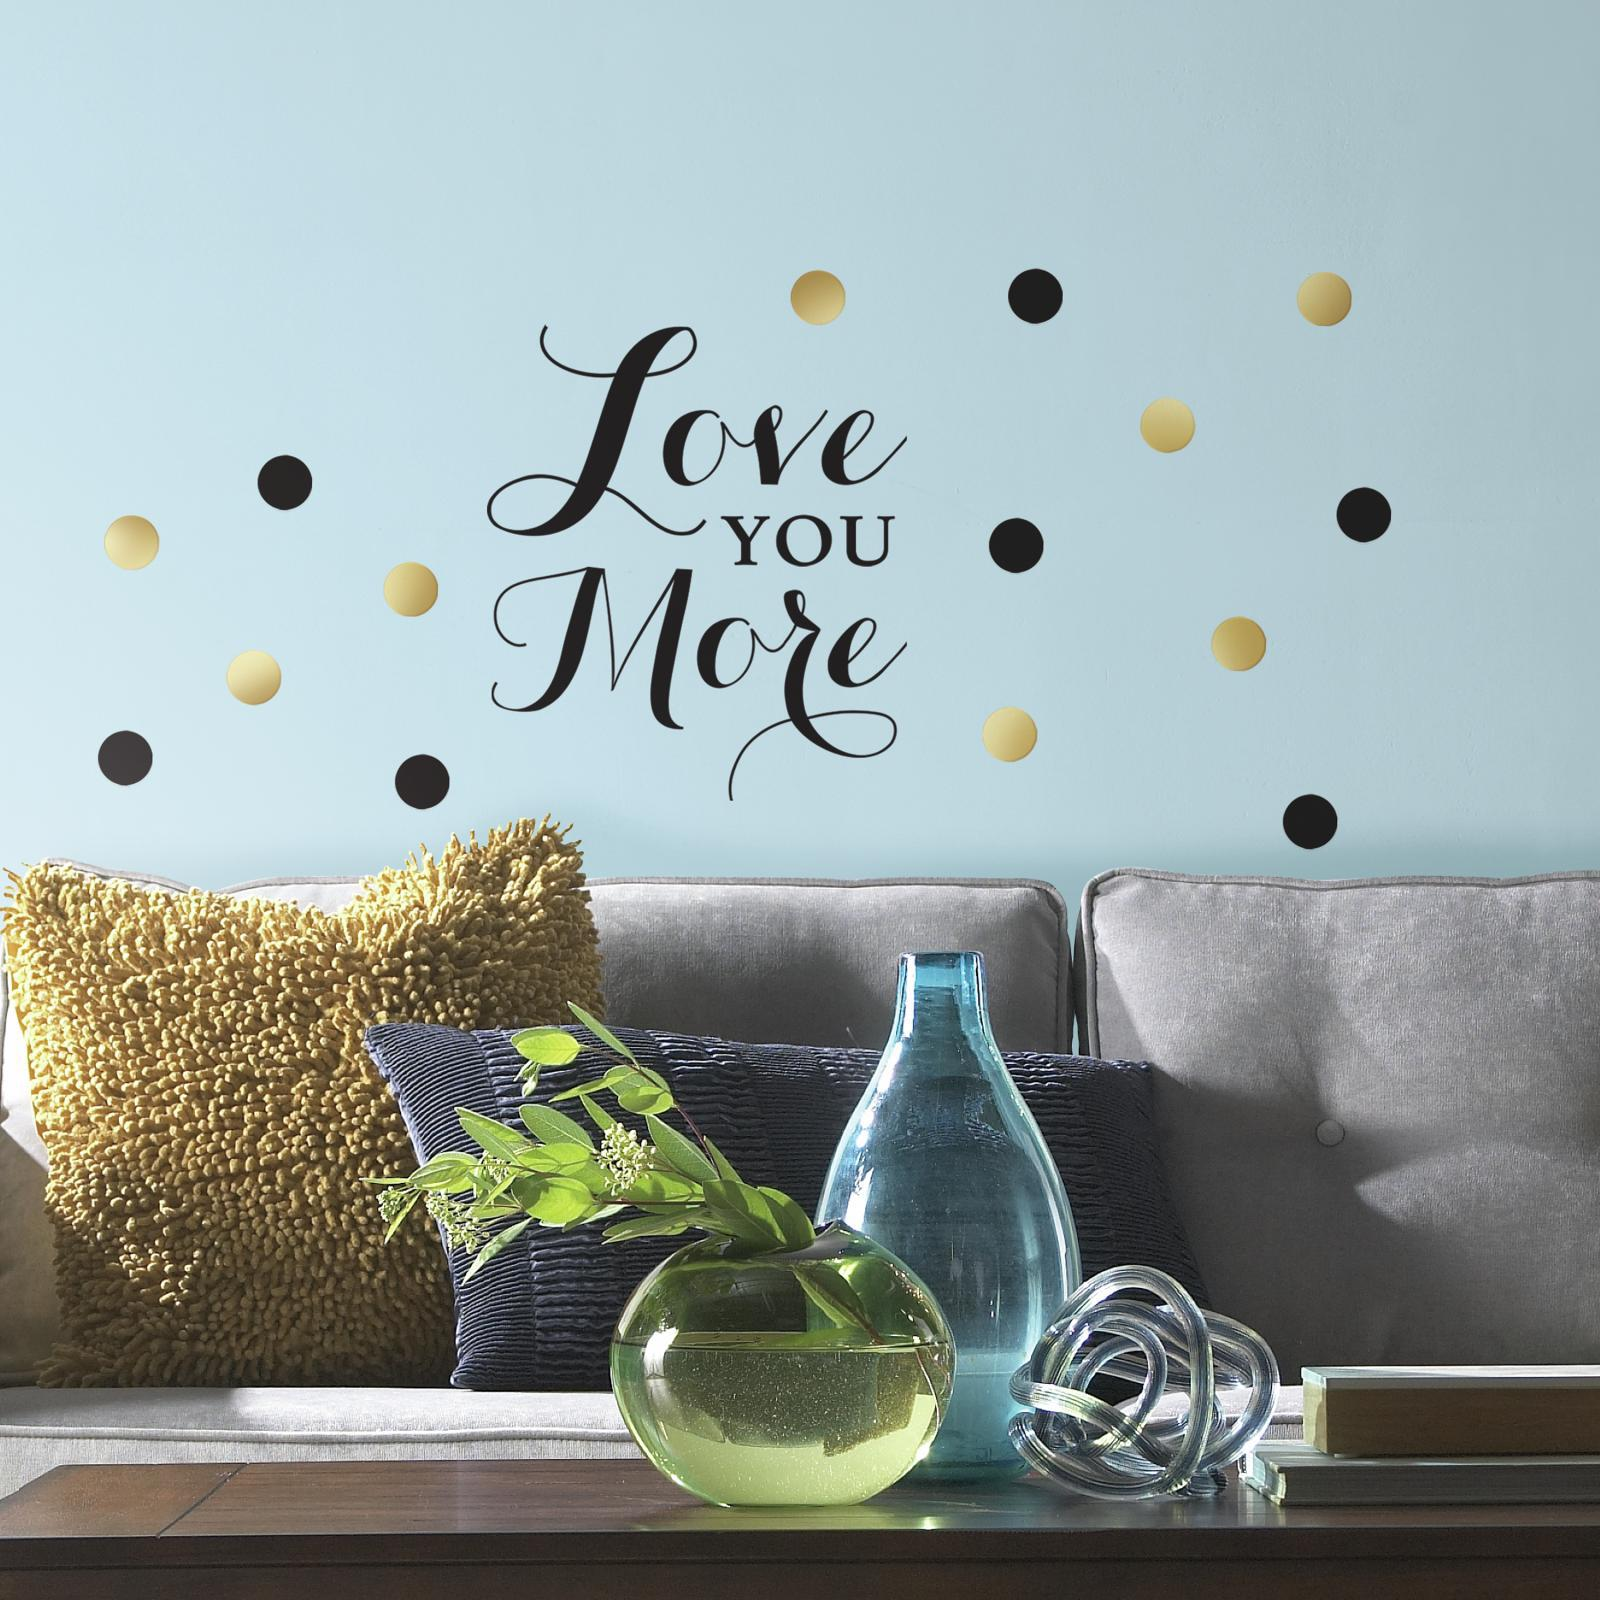 RoomMates Love You More Quote Peel and Stick Wall Decals PartNumber: 00941407000P KsnValue: 00941407000 MfgPartNumber: RMK3169SCS